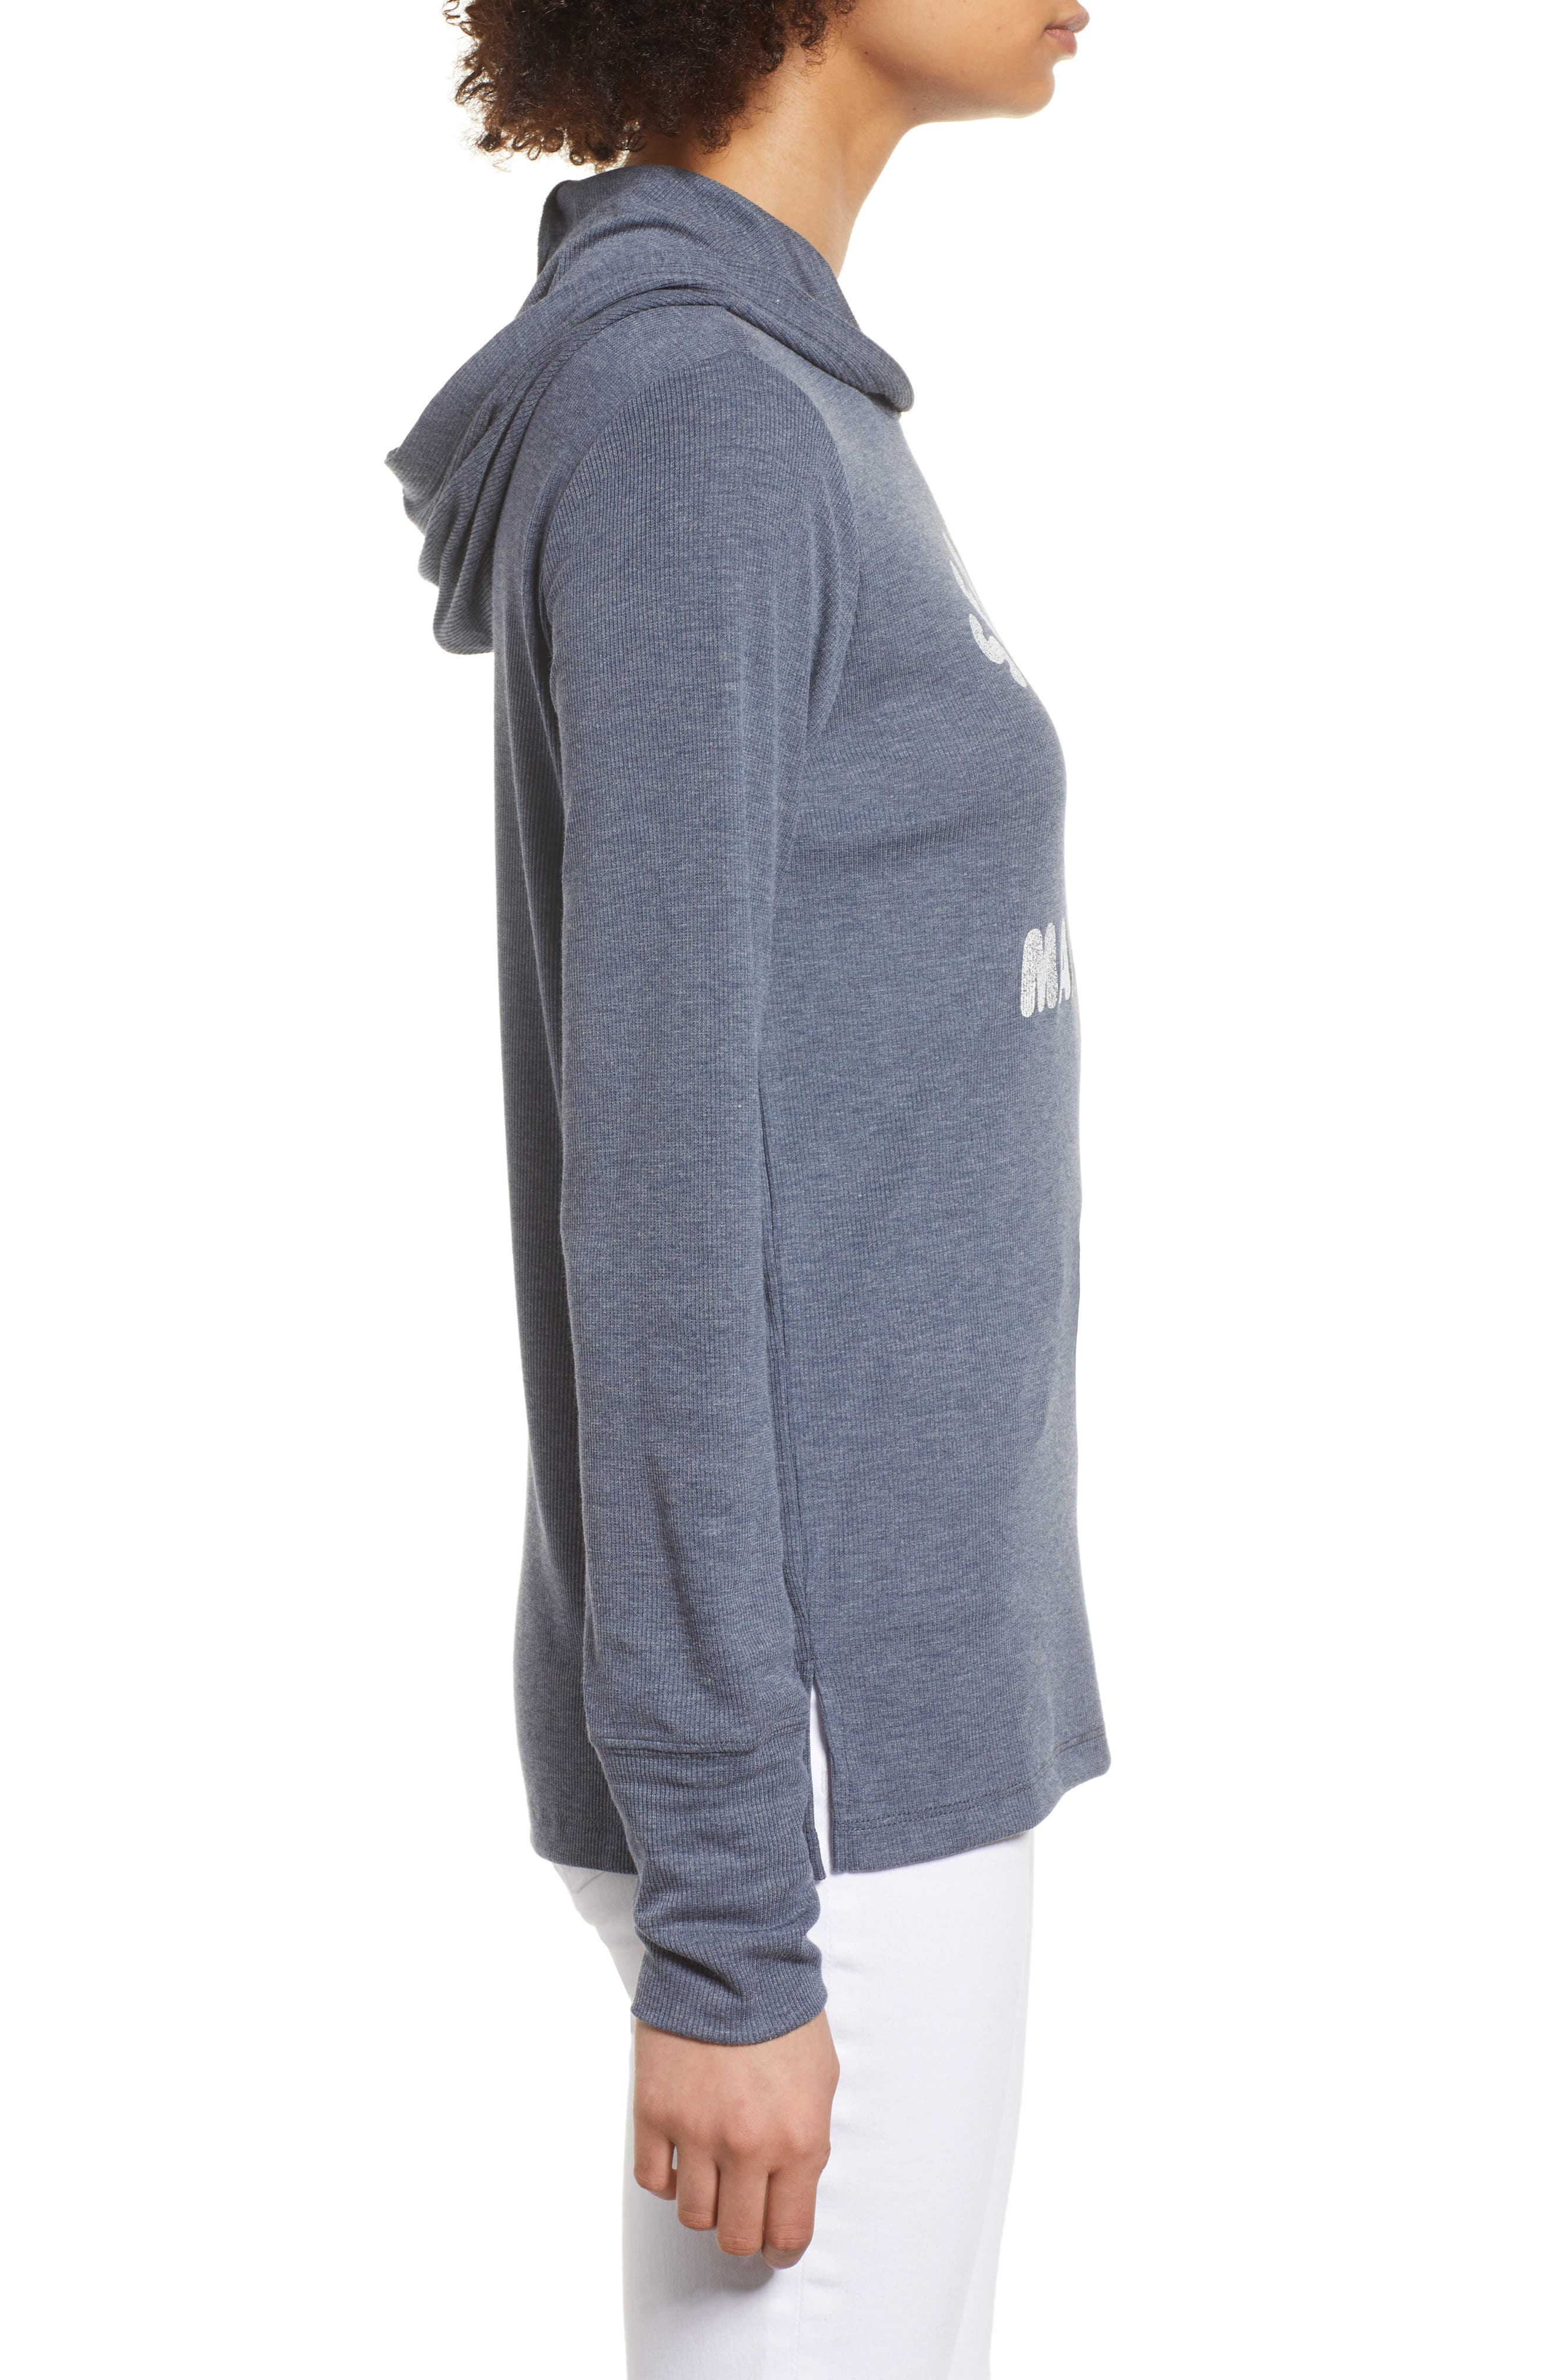 Campbell Seattle Mariners Rib Knit Hooded Top,                             Alternate thumbnail 3, color,                             Midnight